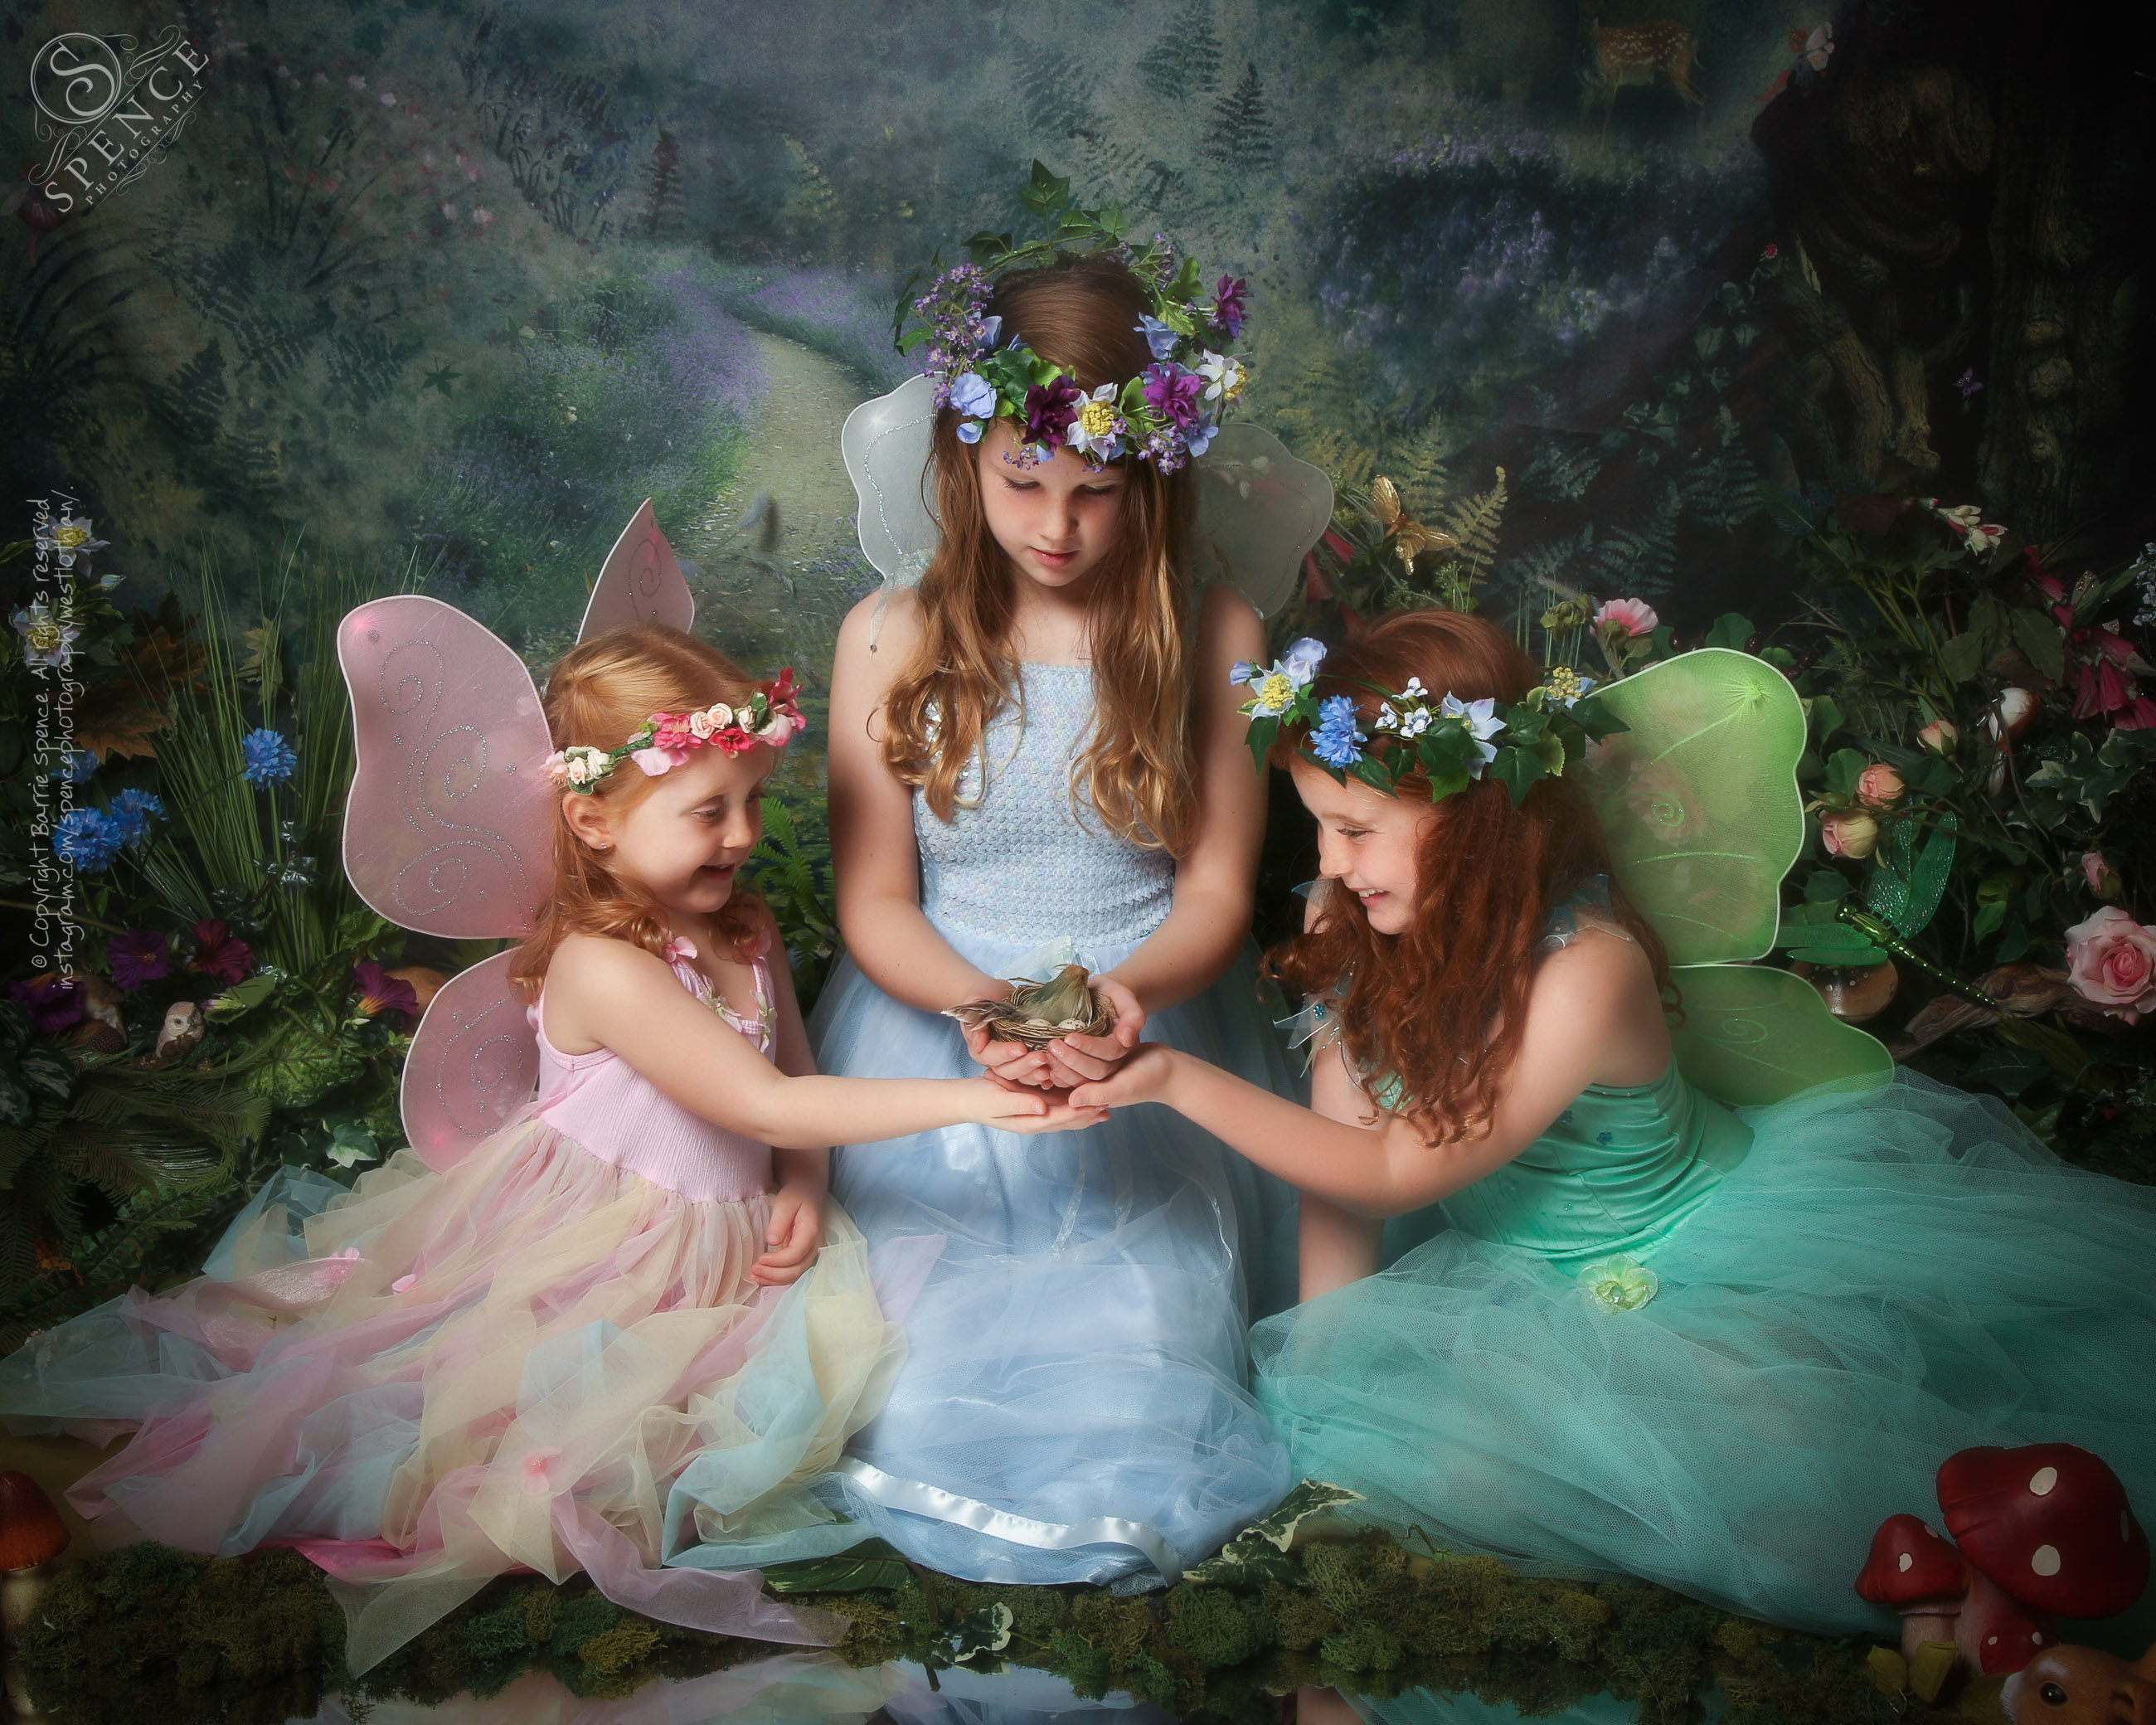 Melissa, Mirren & Elise  - The Fairy Experience @ Spence Photography